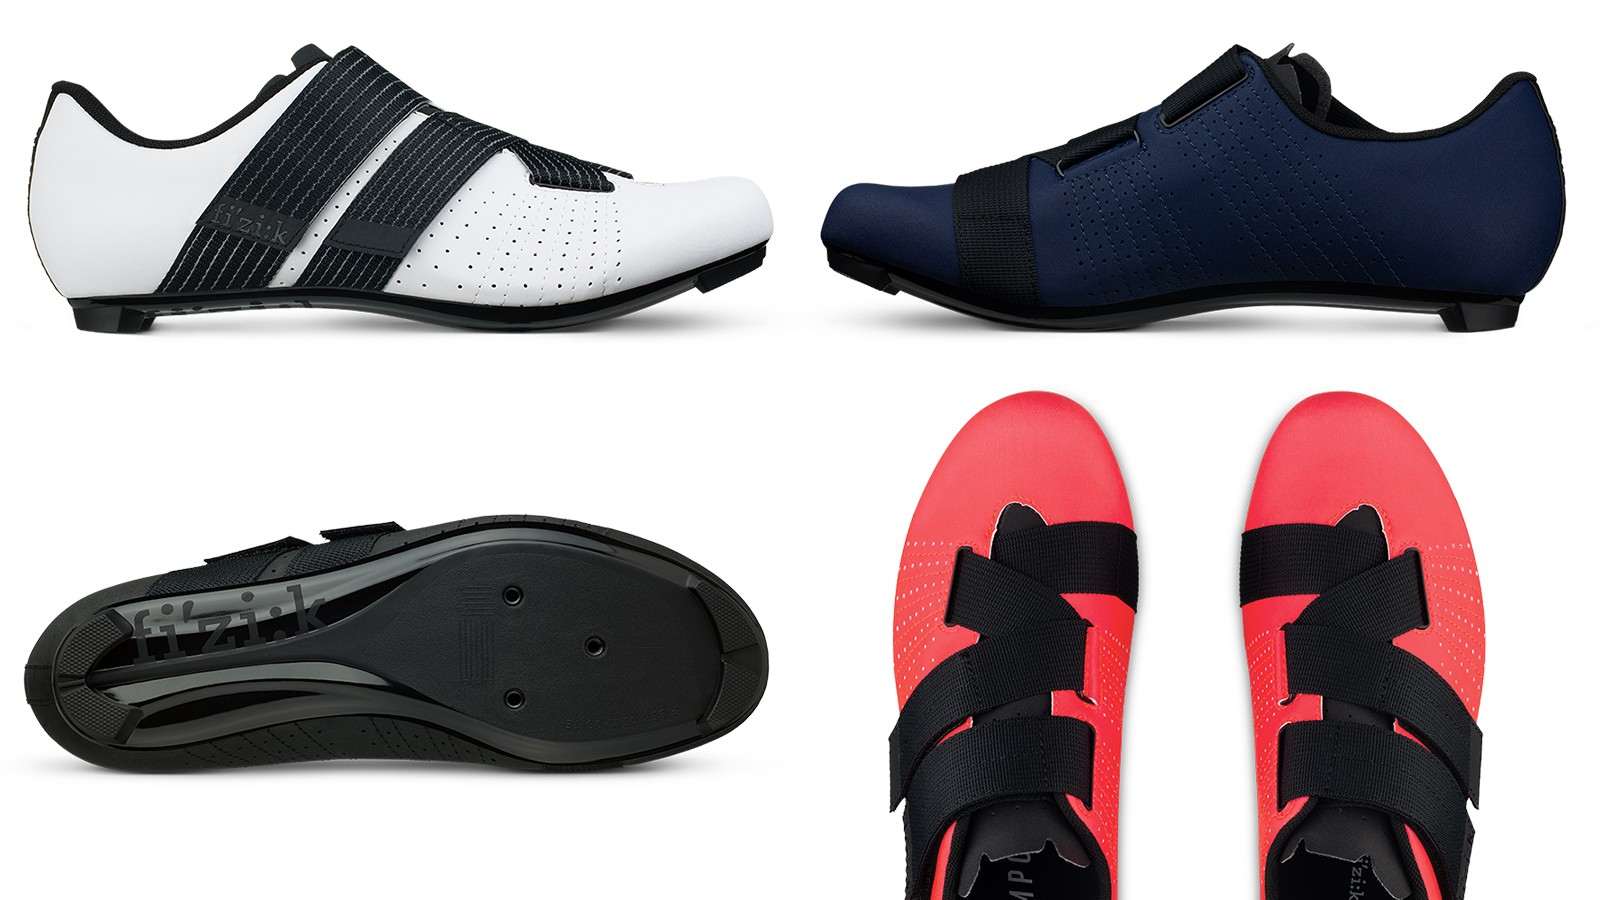 The new Fizik Tempo Powerstrap R5 Velcro road shoe